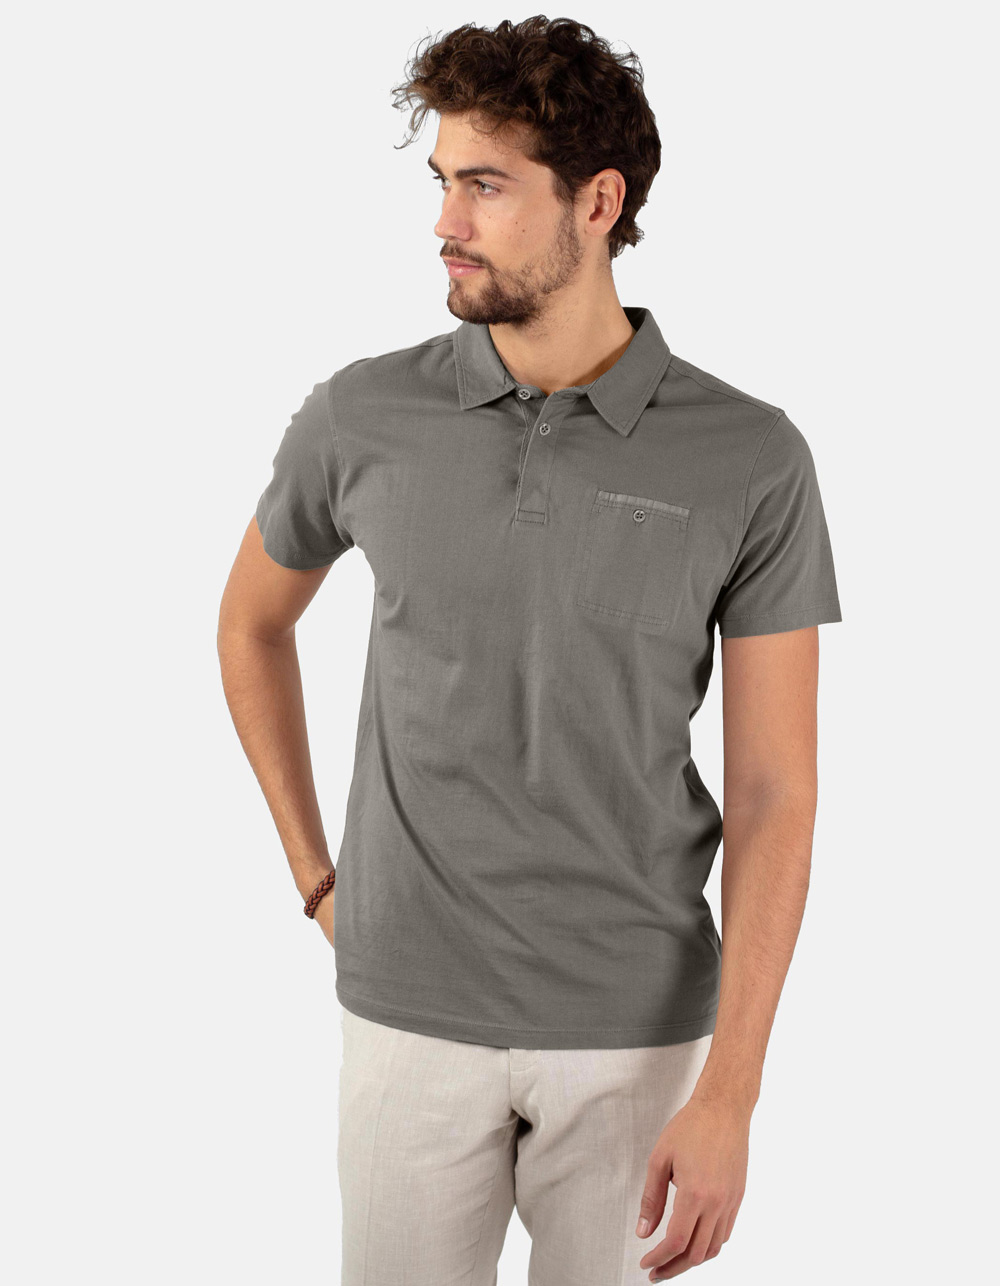 Grey pocket polo shirt